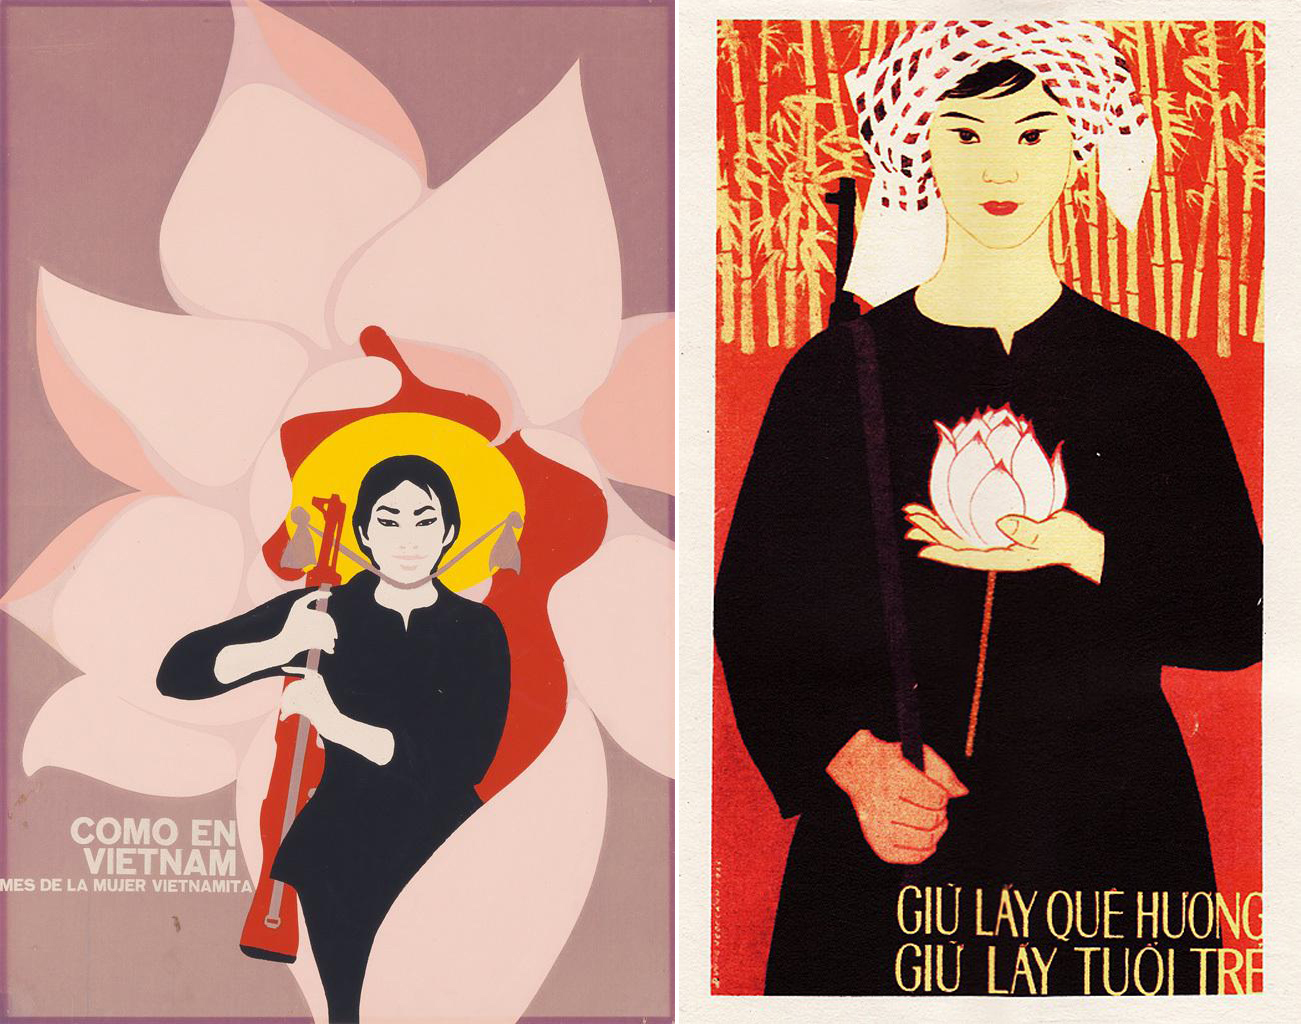 René Mederos (Cuba), Como en Viet Nam, Mes de la Mujer Vietnamita ('Like in Vietnam, Month of the Vietnamese Woman'), 1970; Save the Country, Save the Youth (Vietnam), no date.